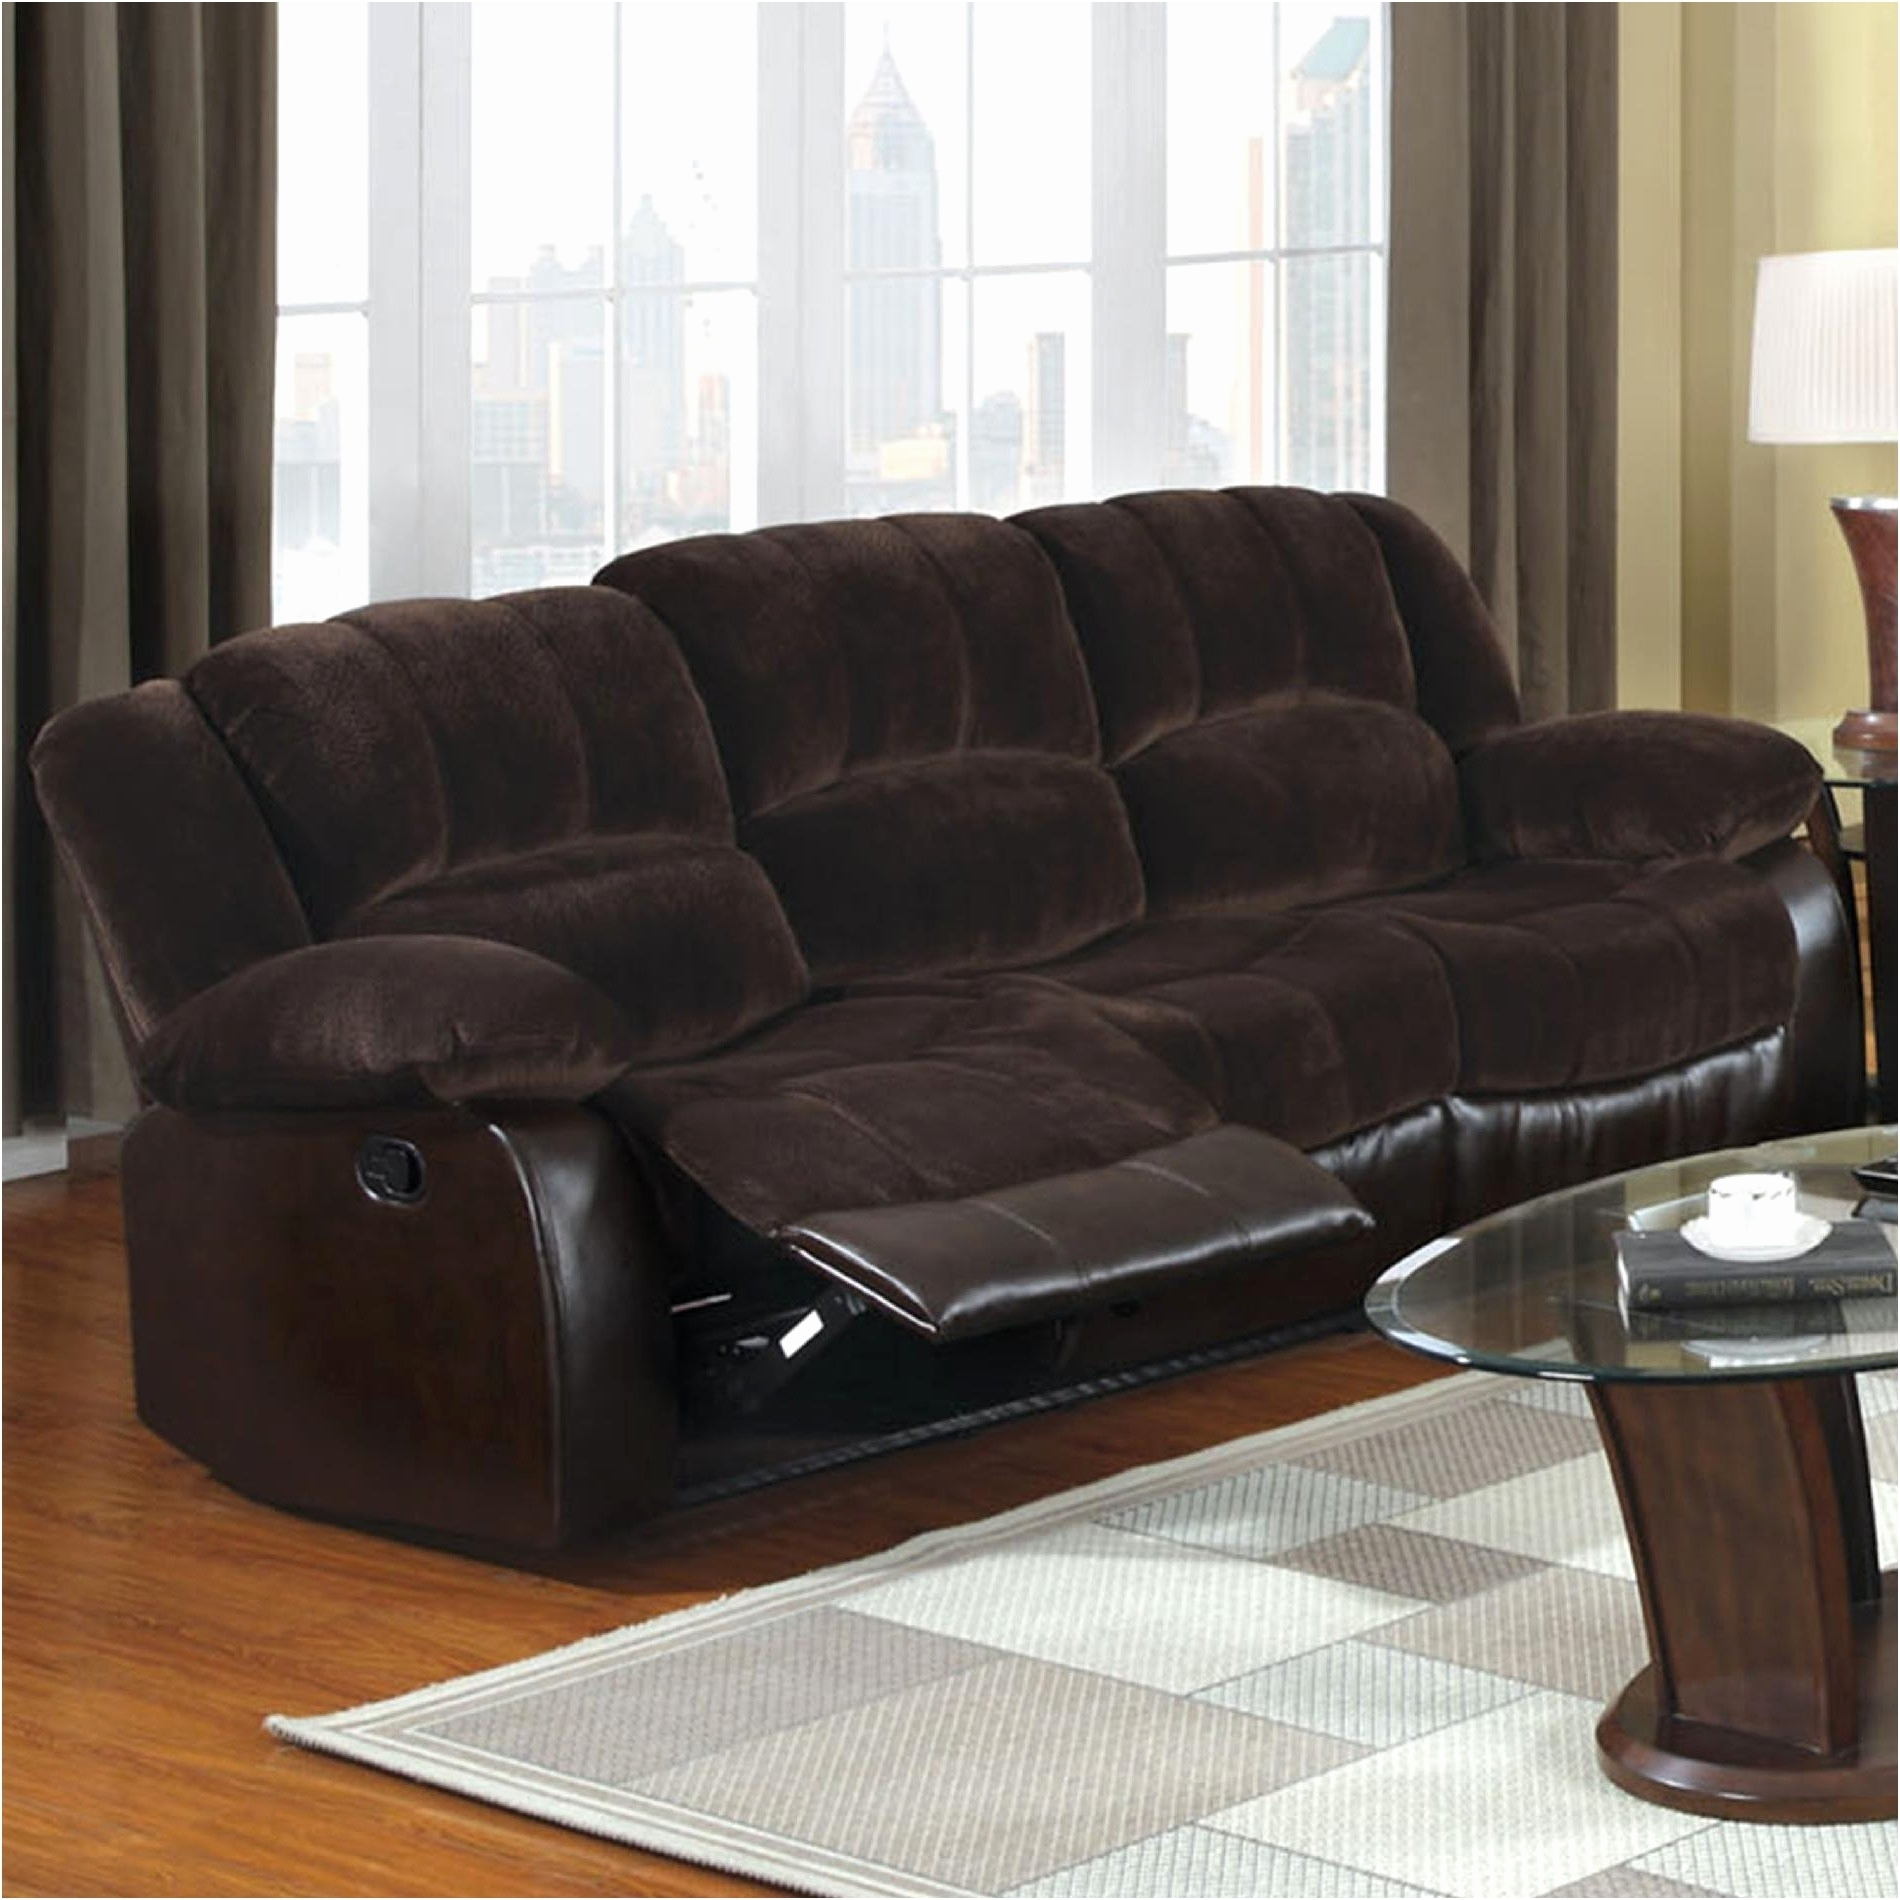 Fresh Sears Leather Sofa New – Intuisiblog for Sectional Sofas At Sears (Image 3 of 15)